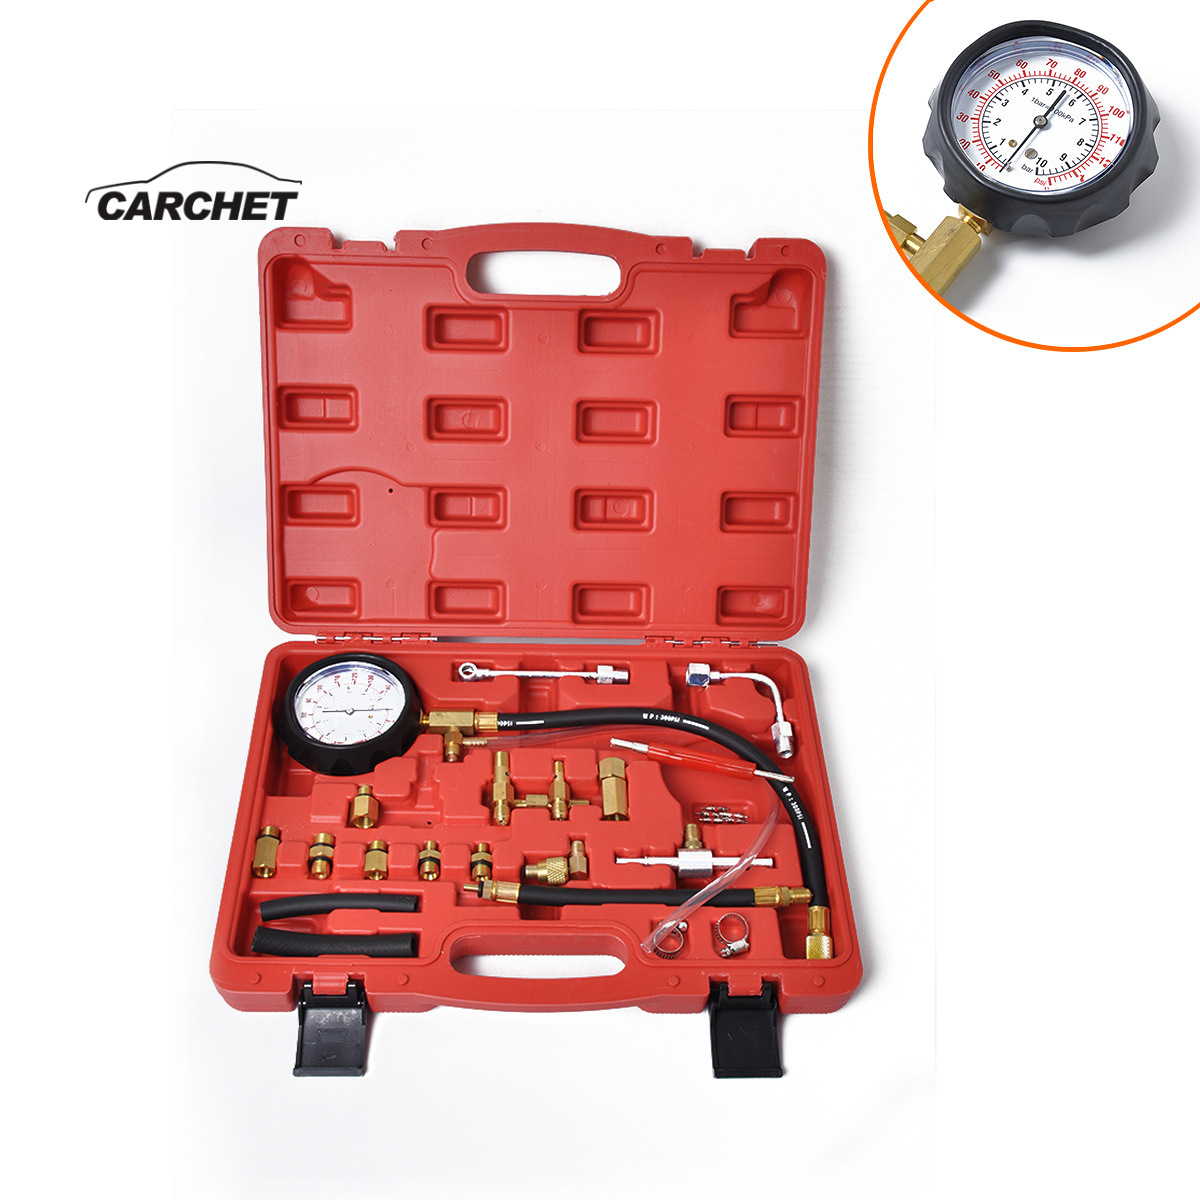 CAECHET TU 114 Professional Fuel System Testing Gauge Fuel Pressure Tester Set Fuel Injection Pump Diagnostic